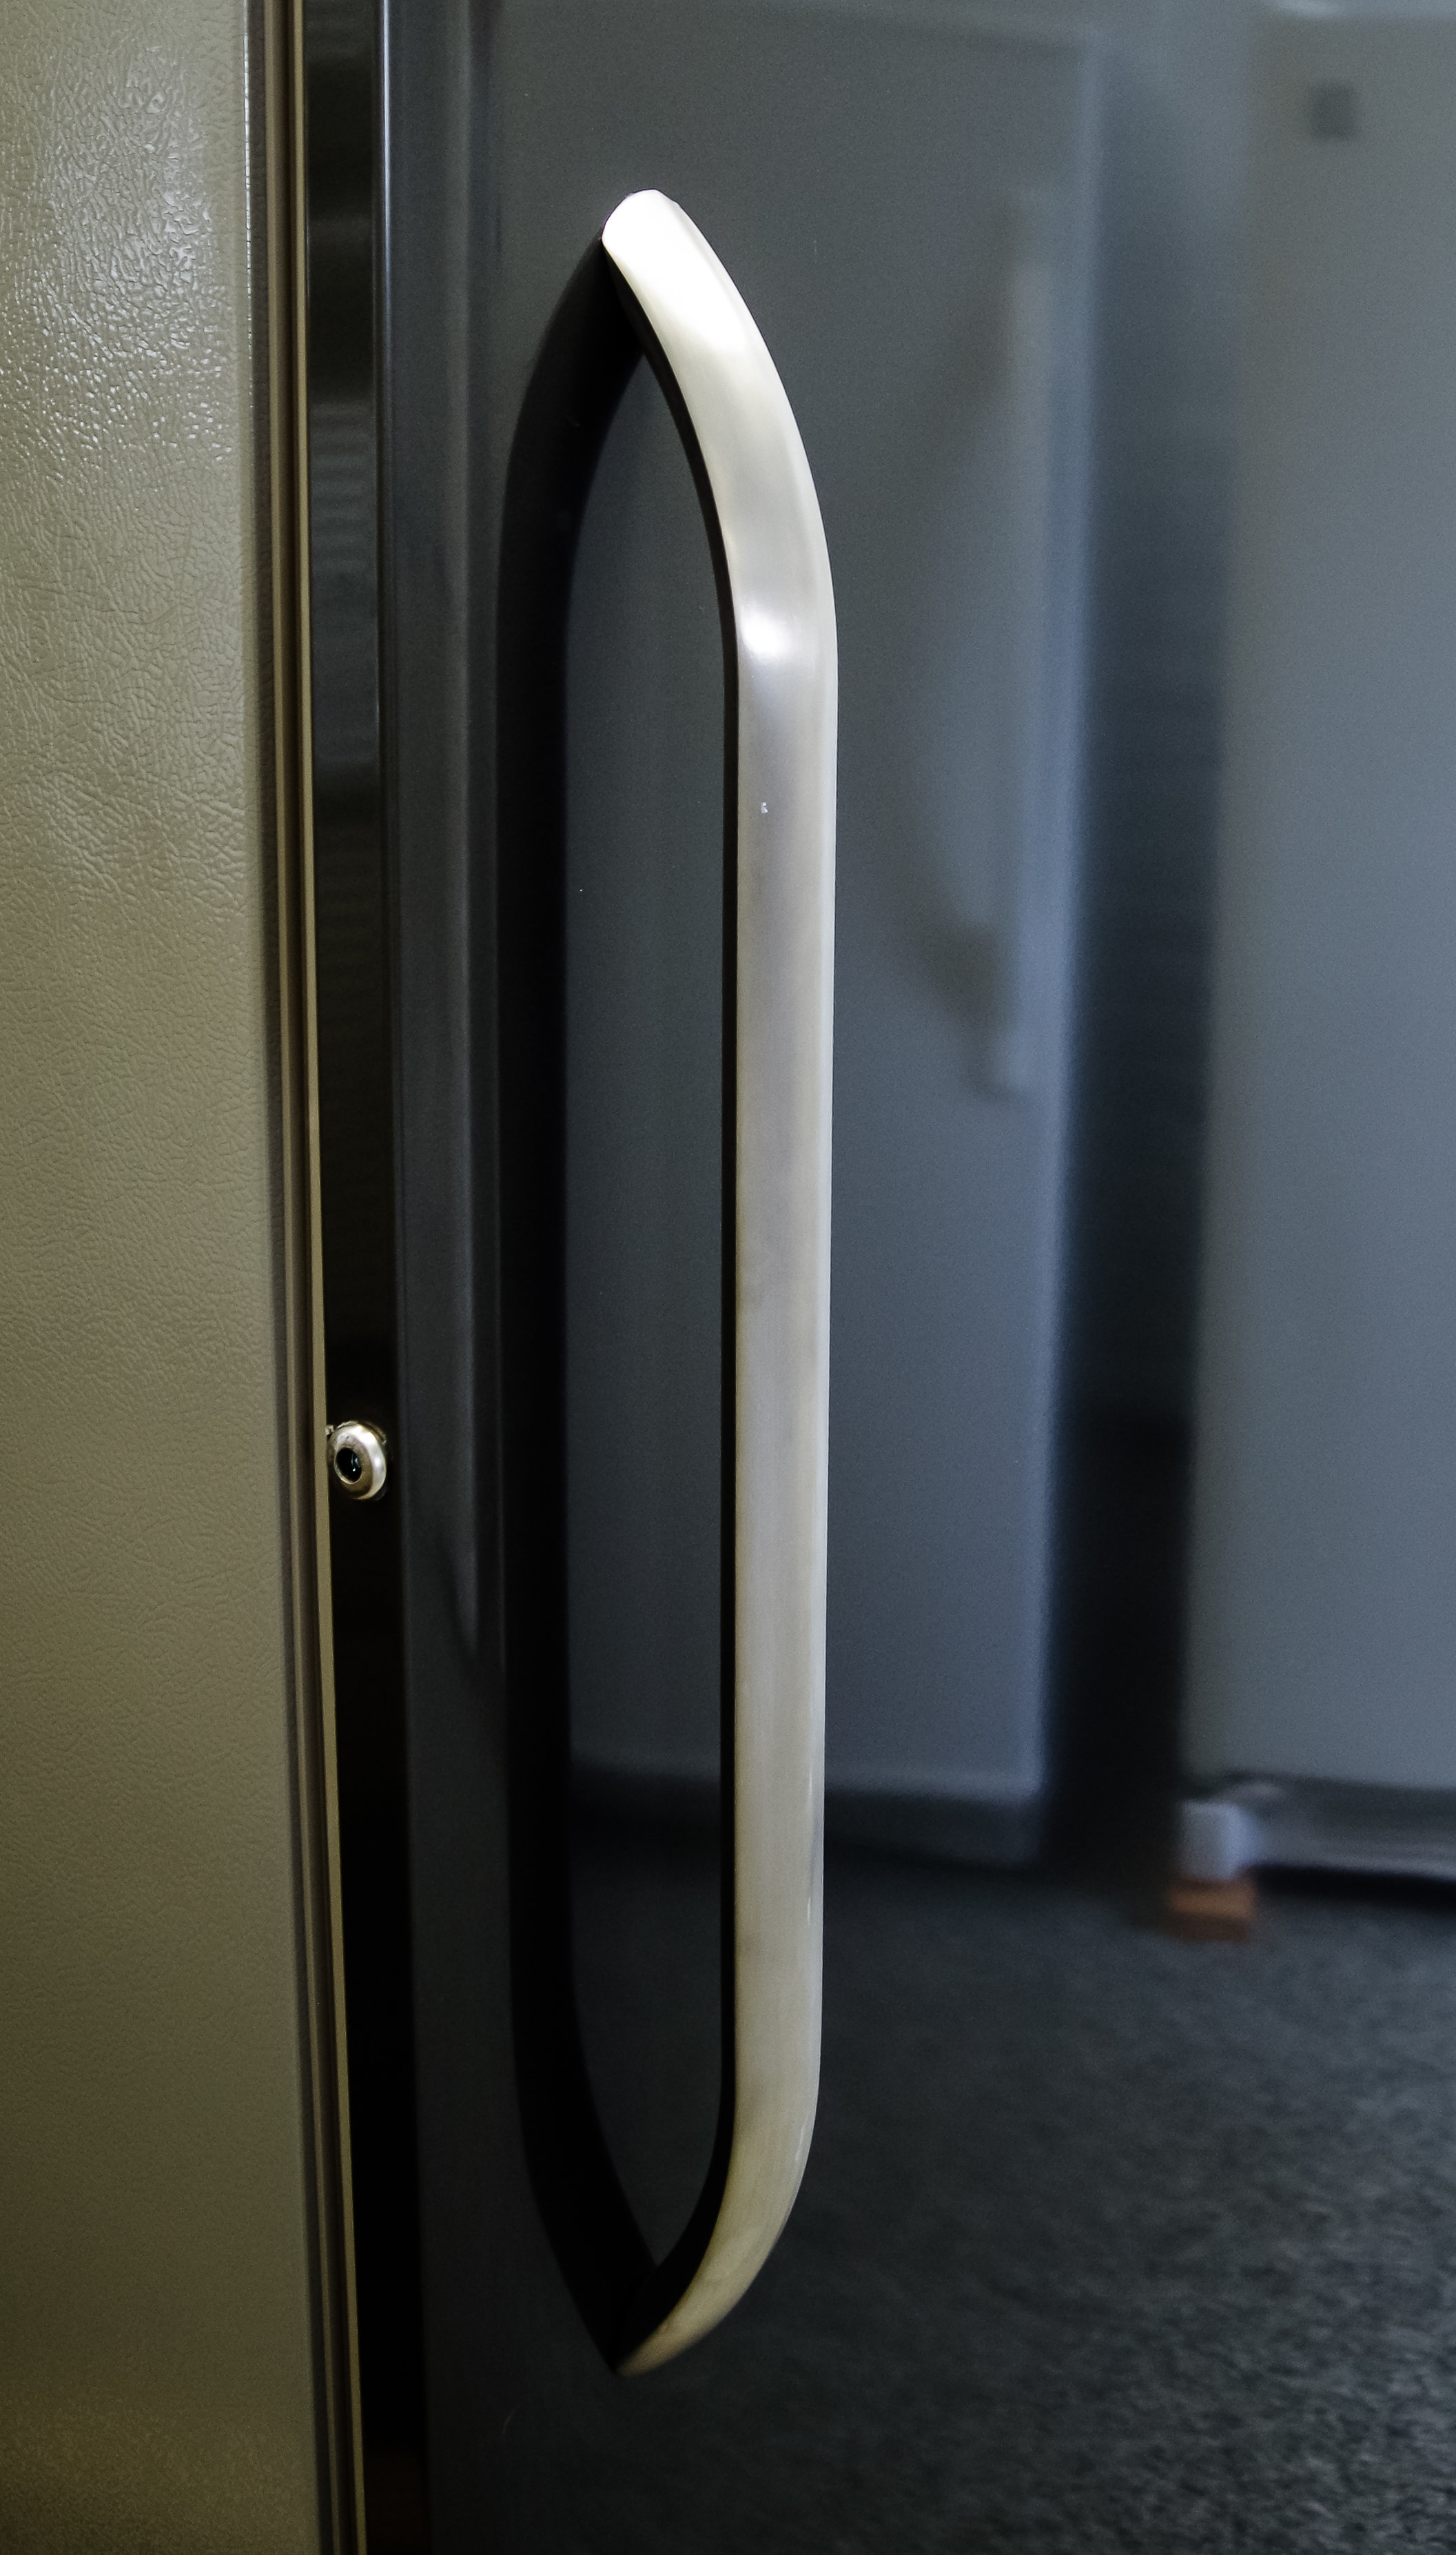 The chrome handle acts as an interesting visual contrast to the Frigidaire FFU27F2PT's slate door.